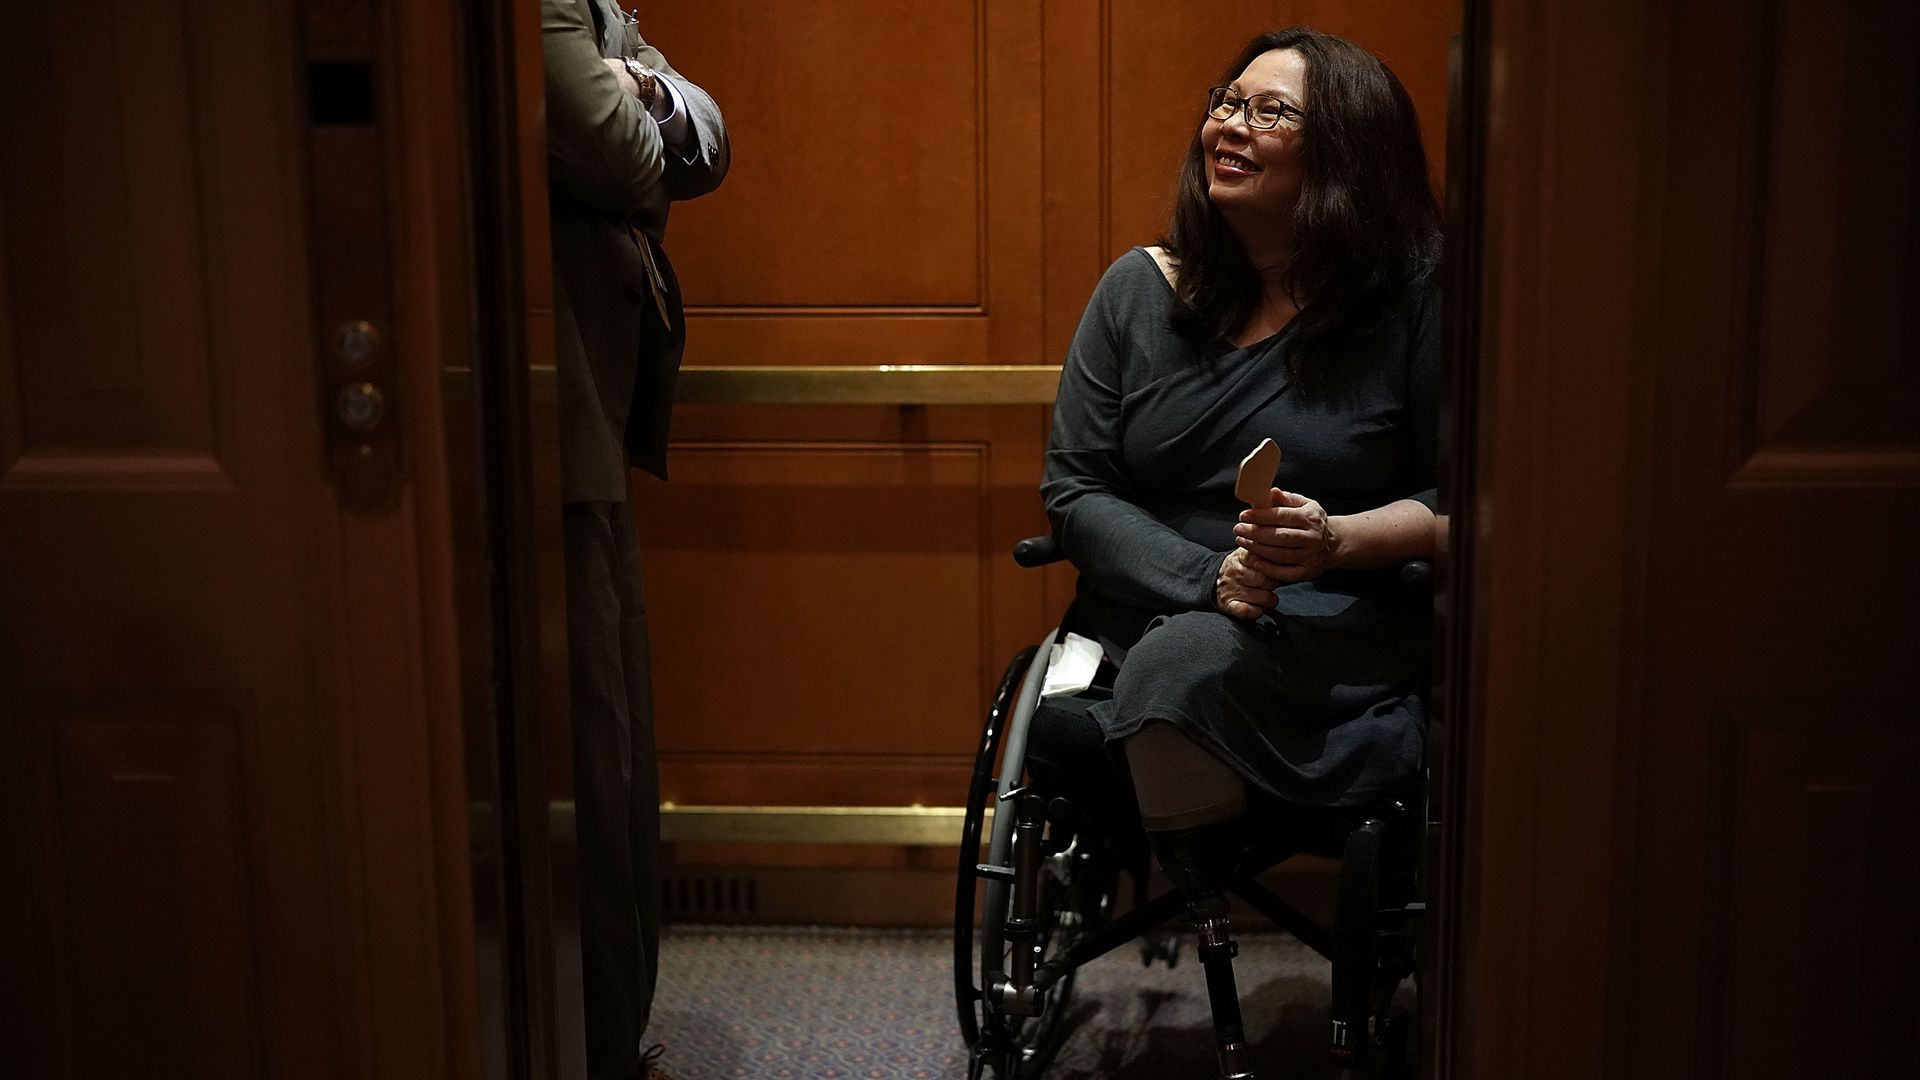 Tammy Duckworth smiles up from her wheelchair while in an elevator